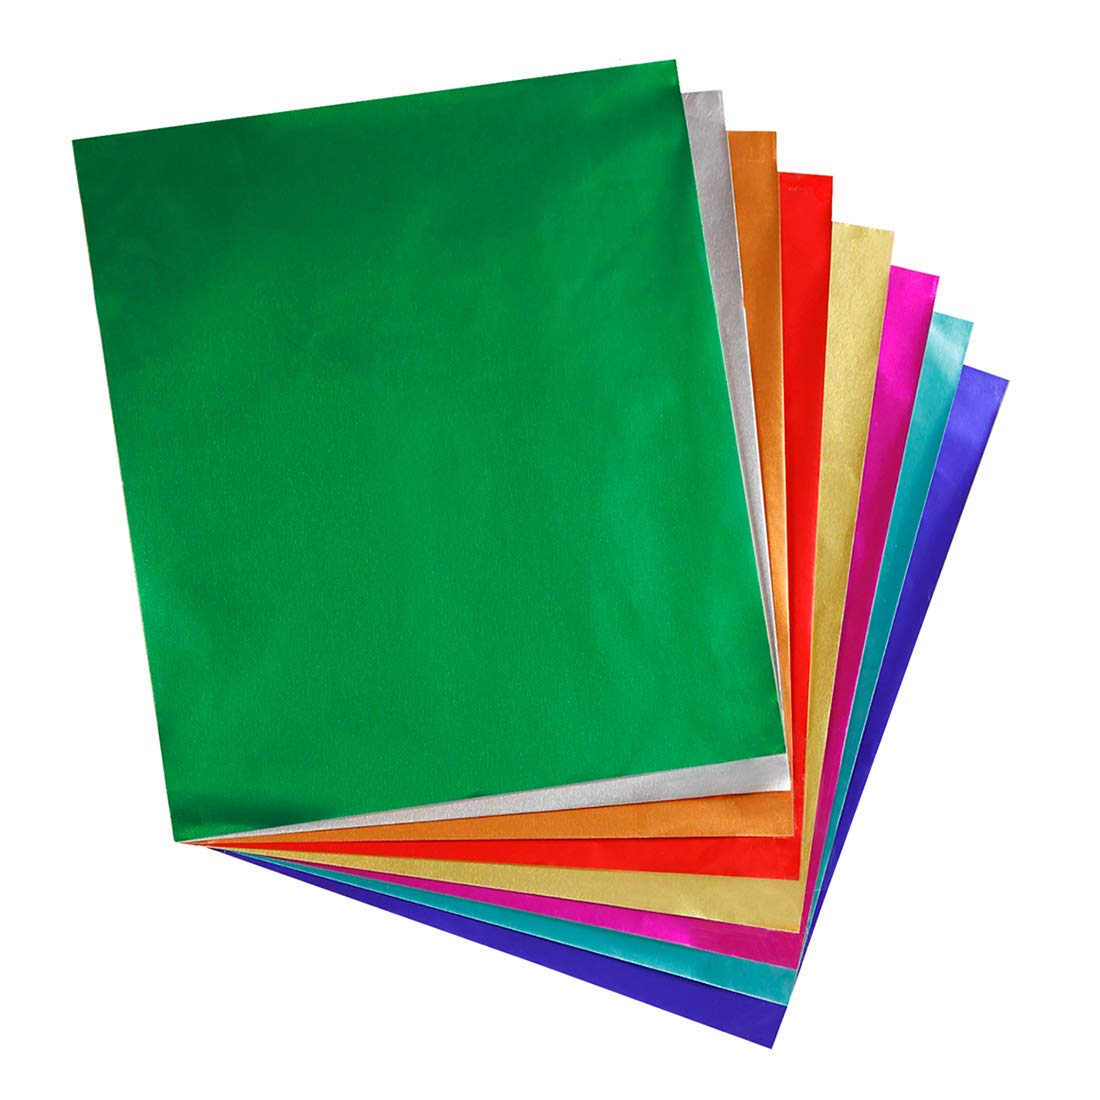 "Hygloss Products Metallic Foil Paper Sheets - 8 Assorted Colors, 8 1/2 x 10"", (12 Packs of 24) Bulk Pack- 288 Sheets"